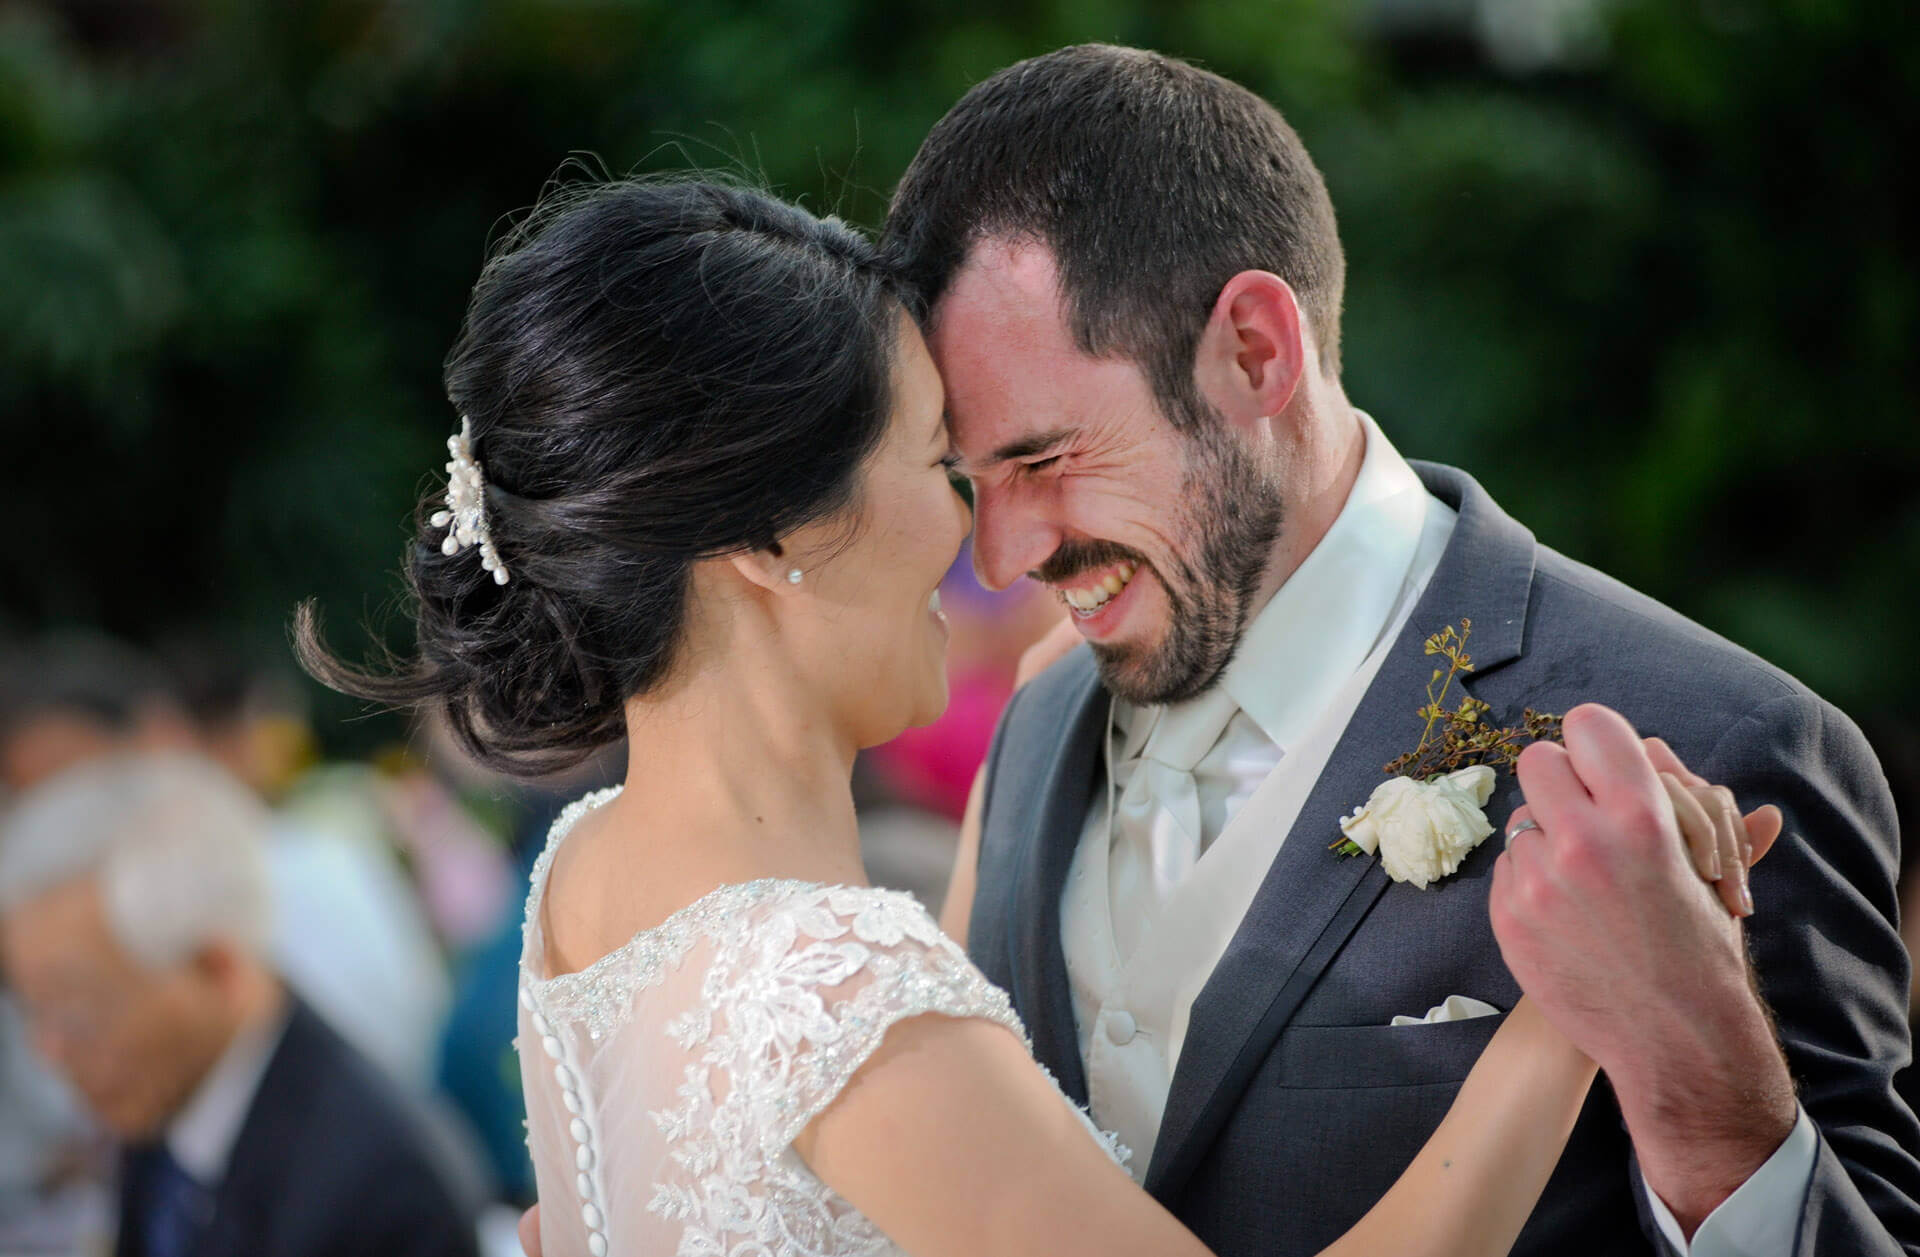 The bride and groom share a nice moment during their first dance at Planterra Conservatory in West Bloomfield, Michigan during their wedding reception.